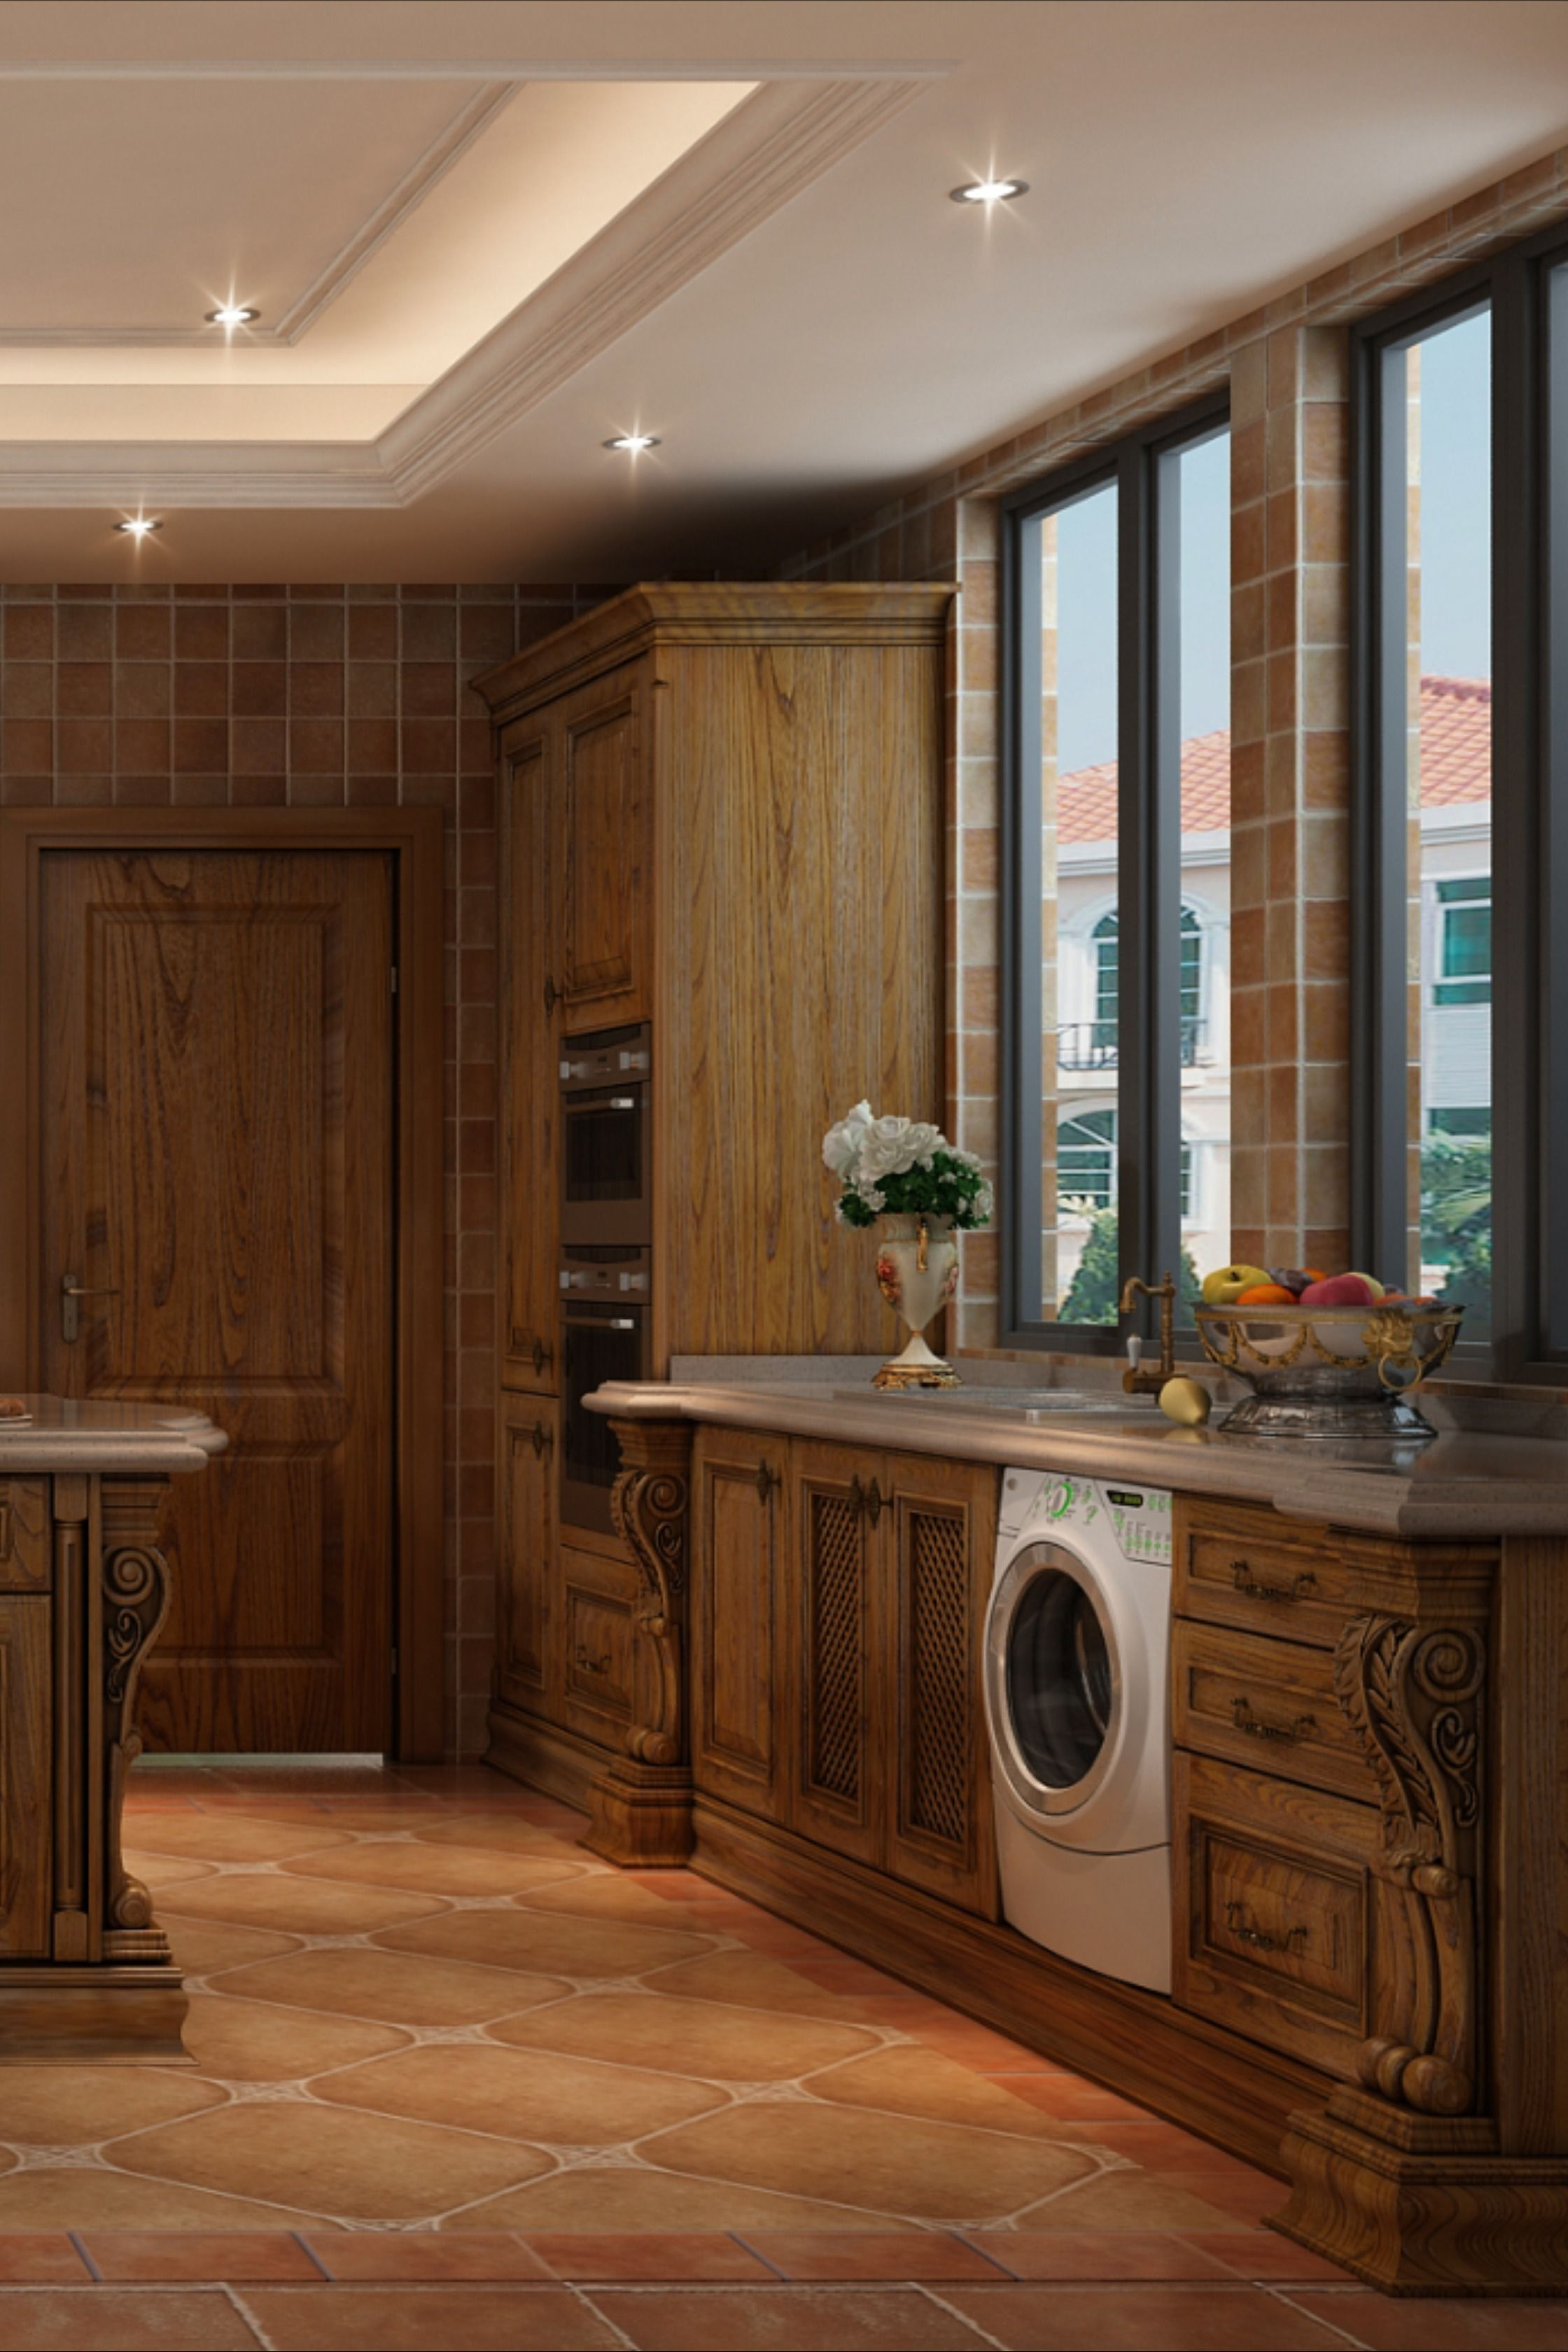 Classic Solid Wood Kitchen Cabinet In 2020 Solid Wood Kitchen Cabinets Wood Kitchen Cabinets Kitchen Cabinets